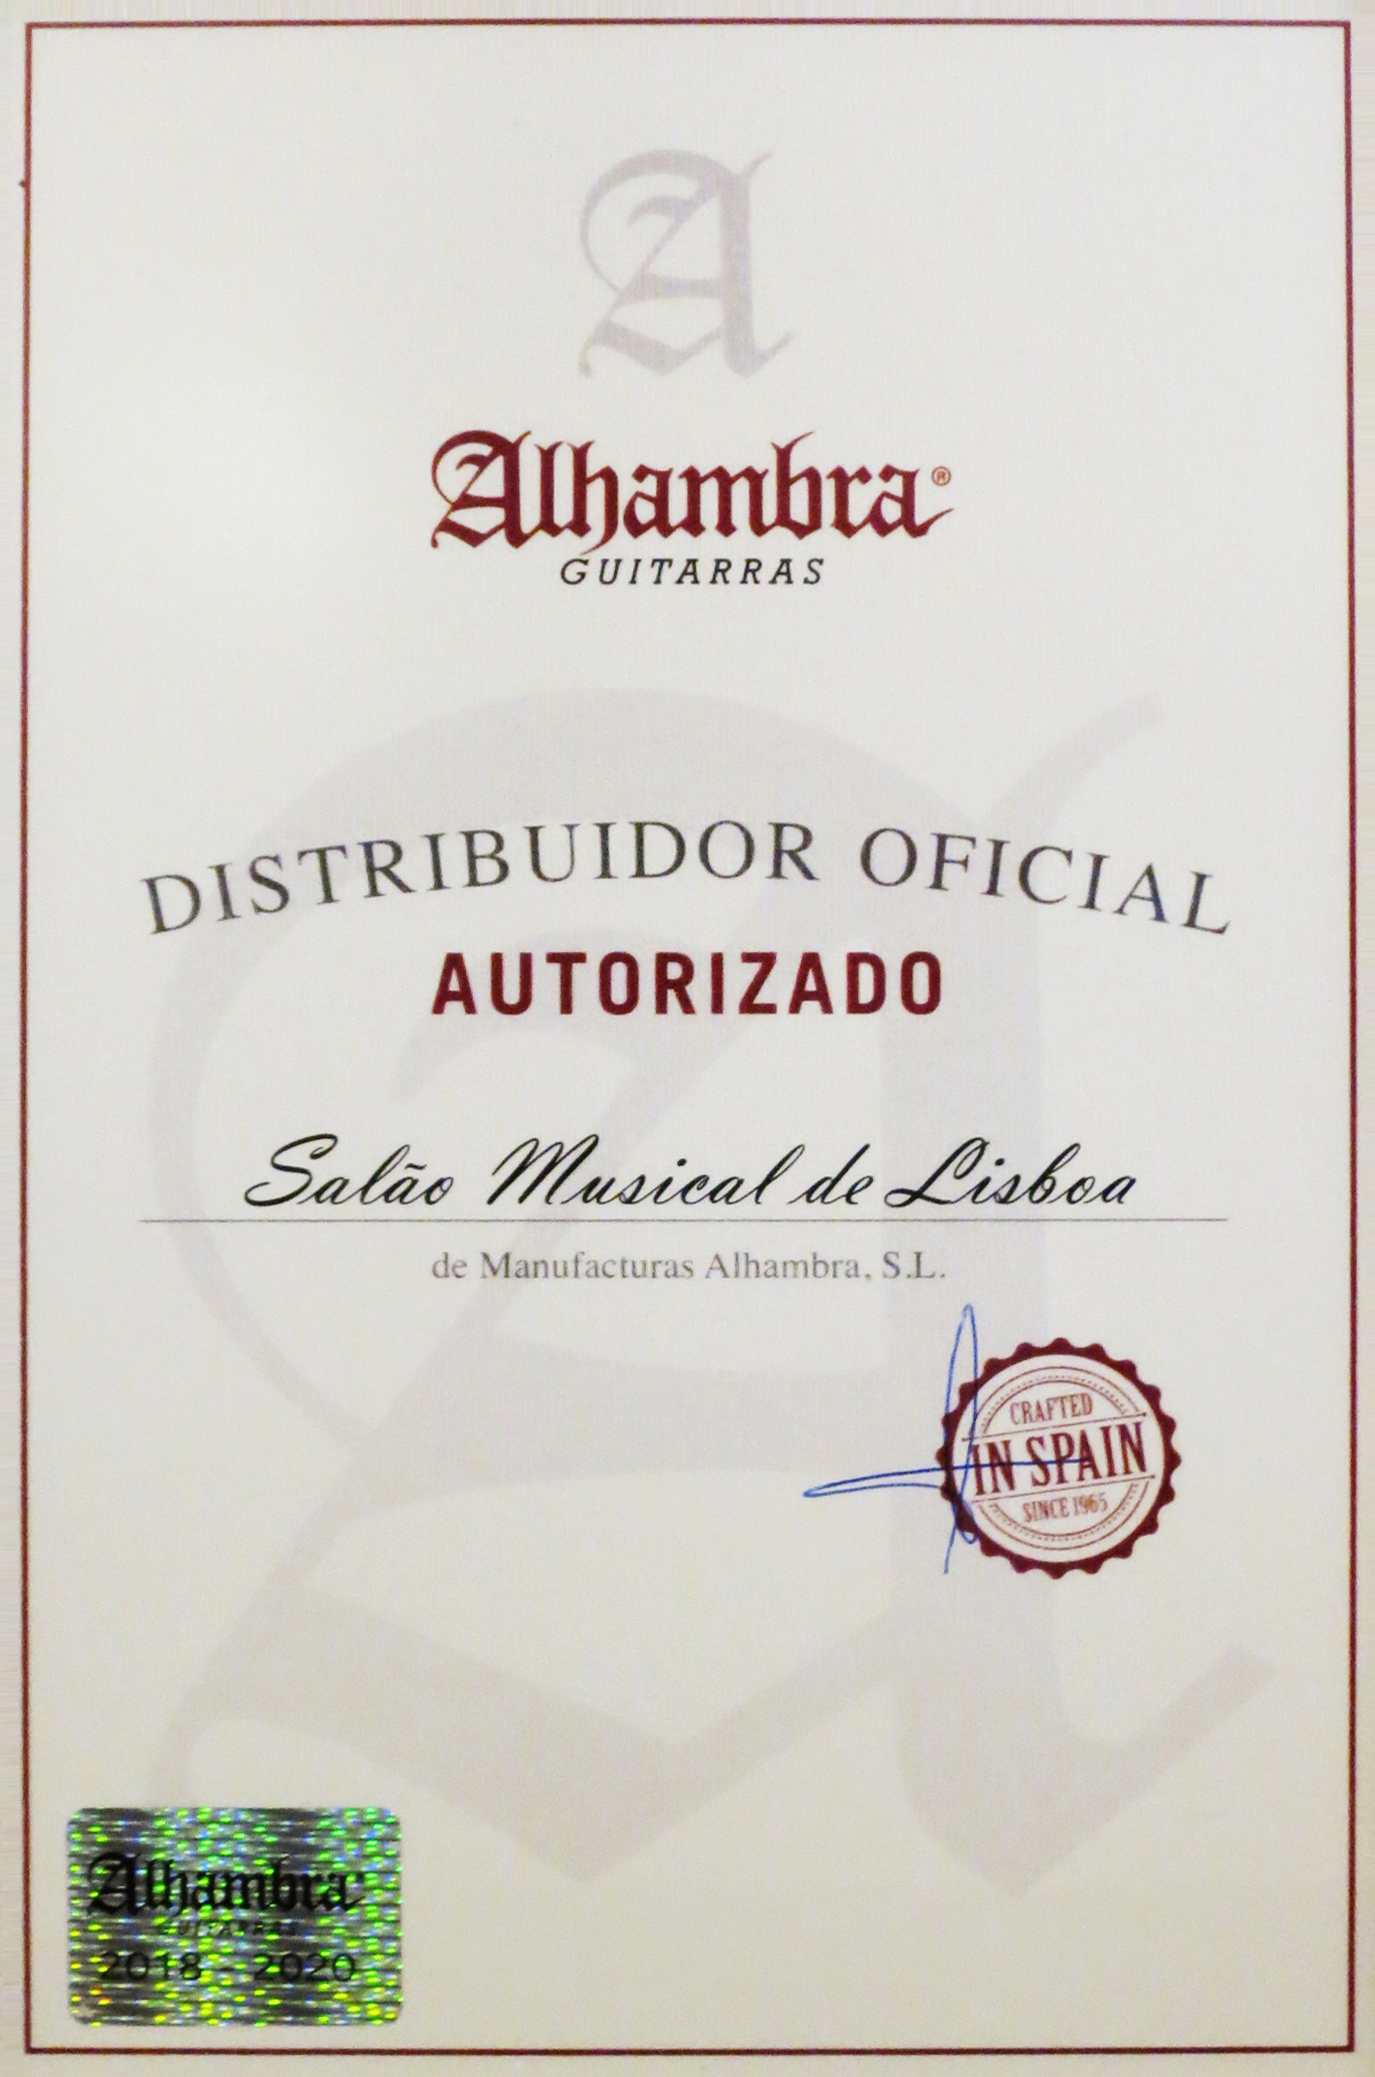 Alhambra authorized official distributor certificate